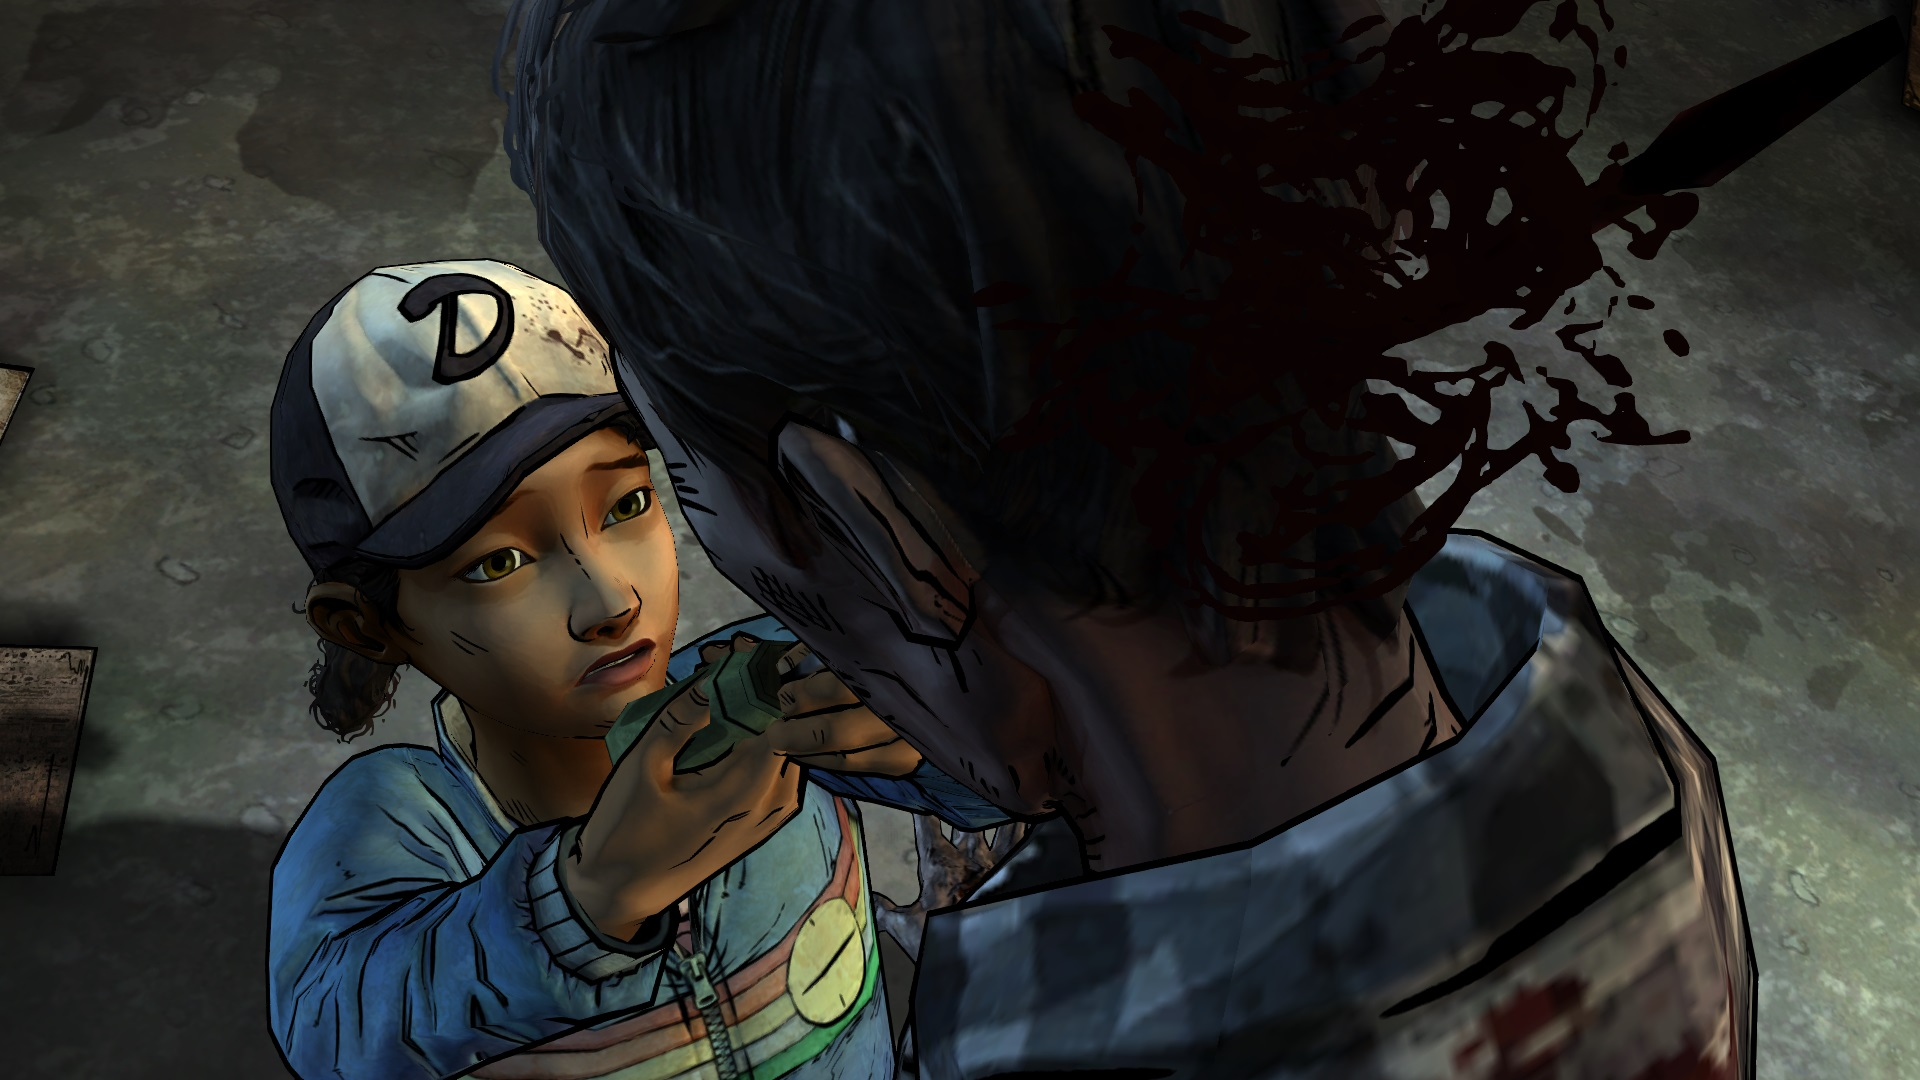 A Tale Of One House Clementine Will Return In The Walking Dead Game Season 3